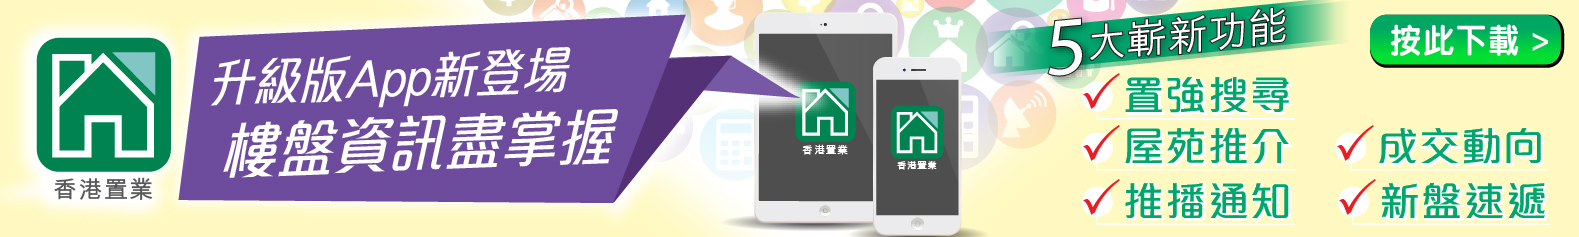 經絡按揭轉介 mReferral Mortgage Brokerage Services